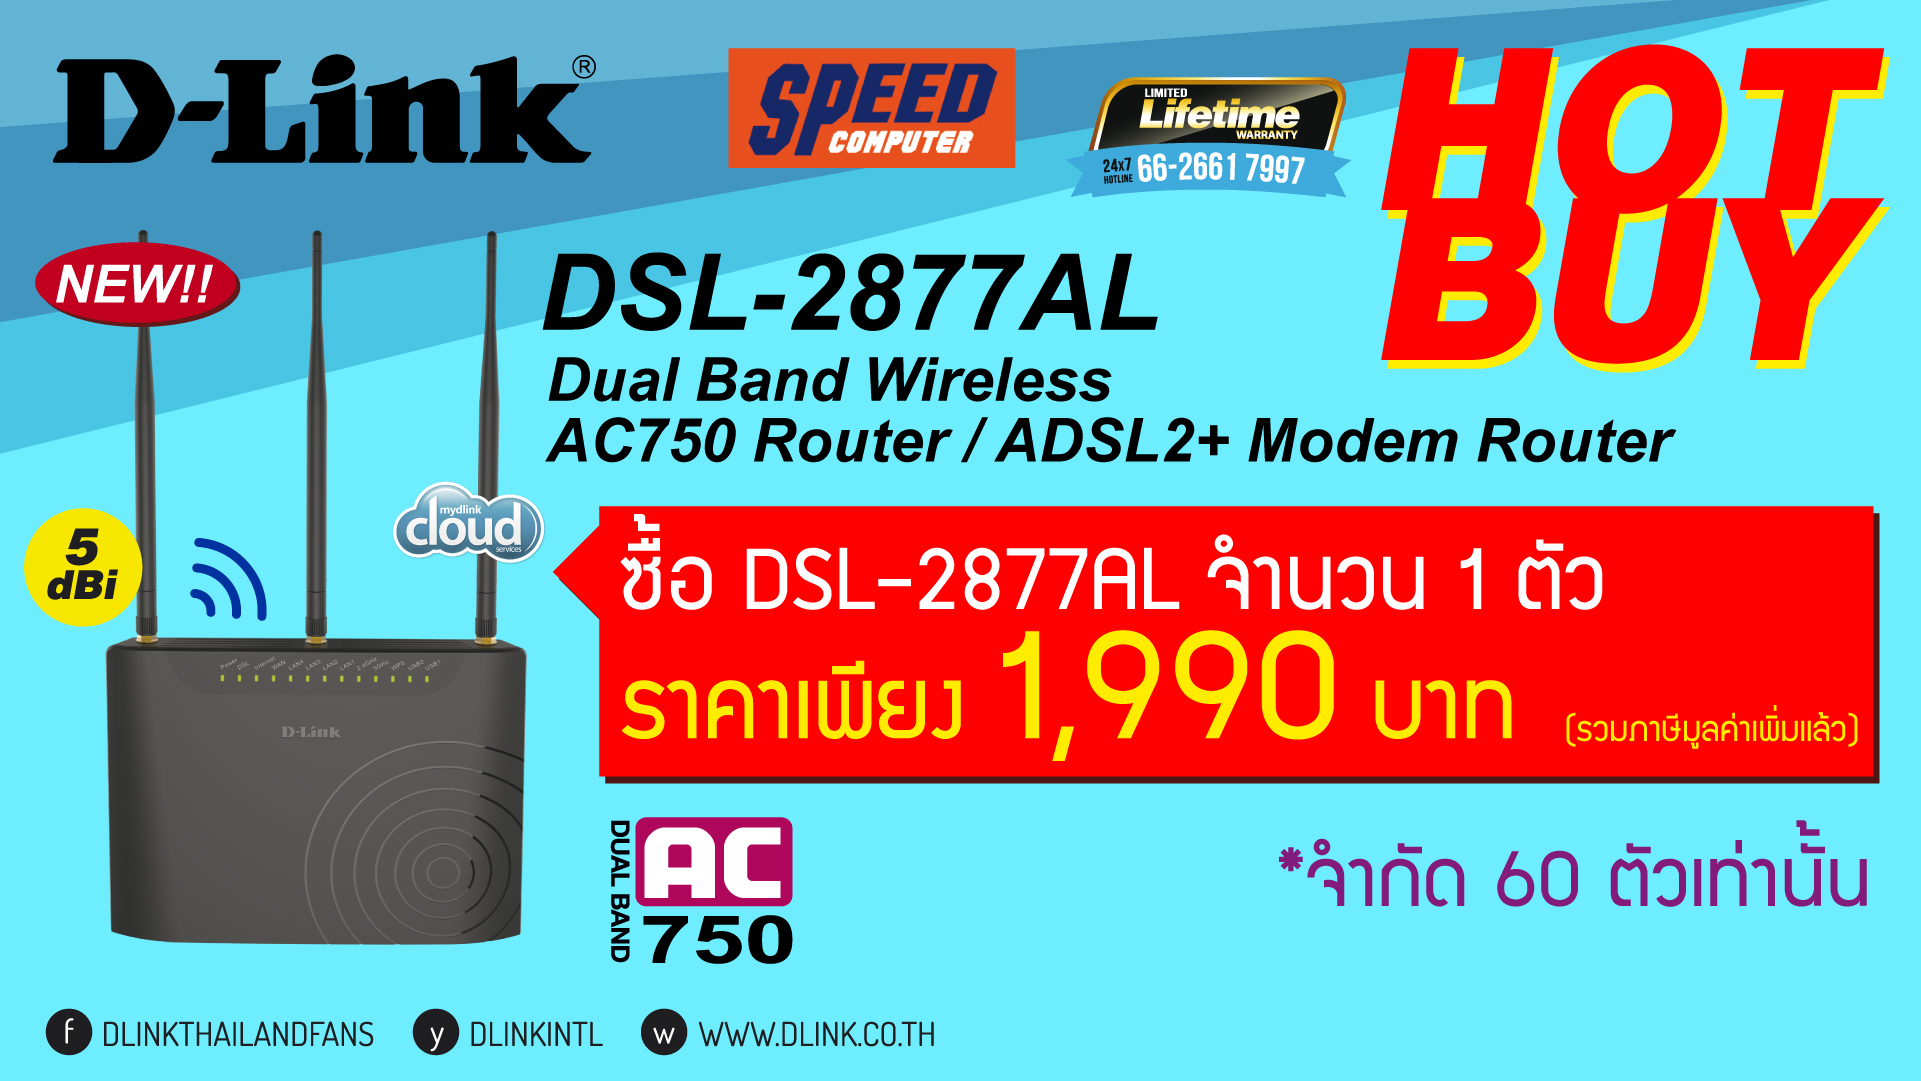 D-Link-Commart-Screen-for-Speed-March-16-01